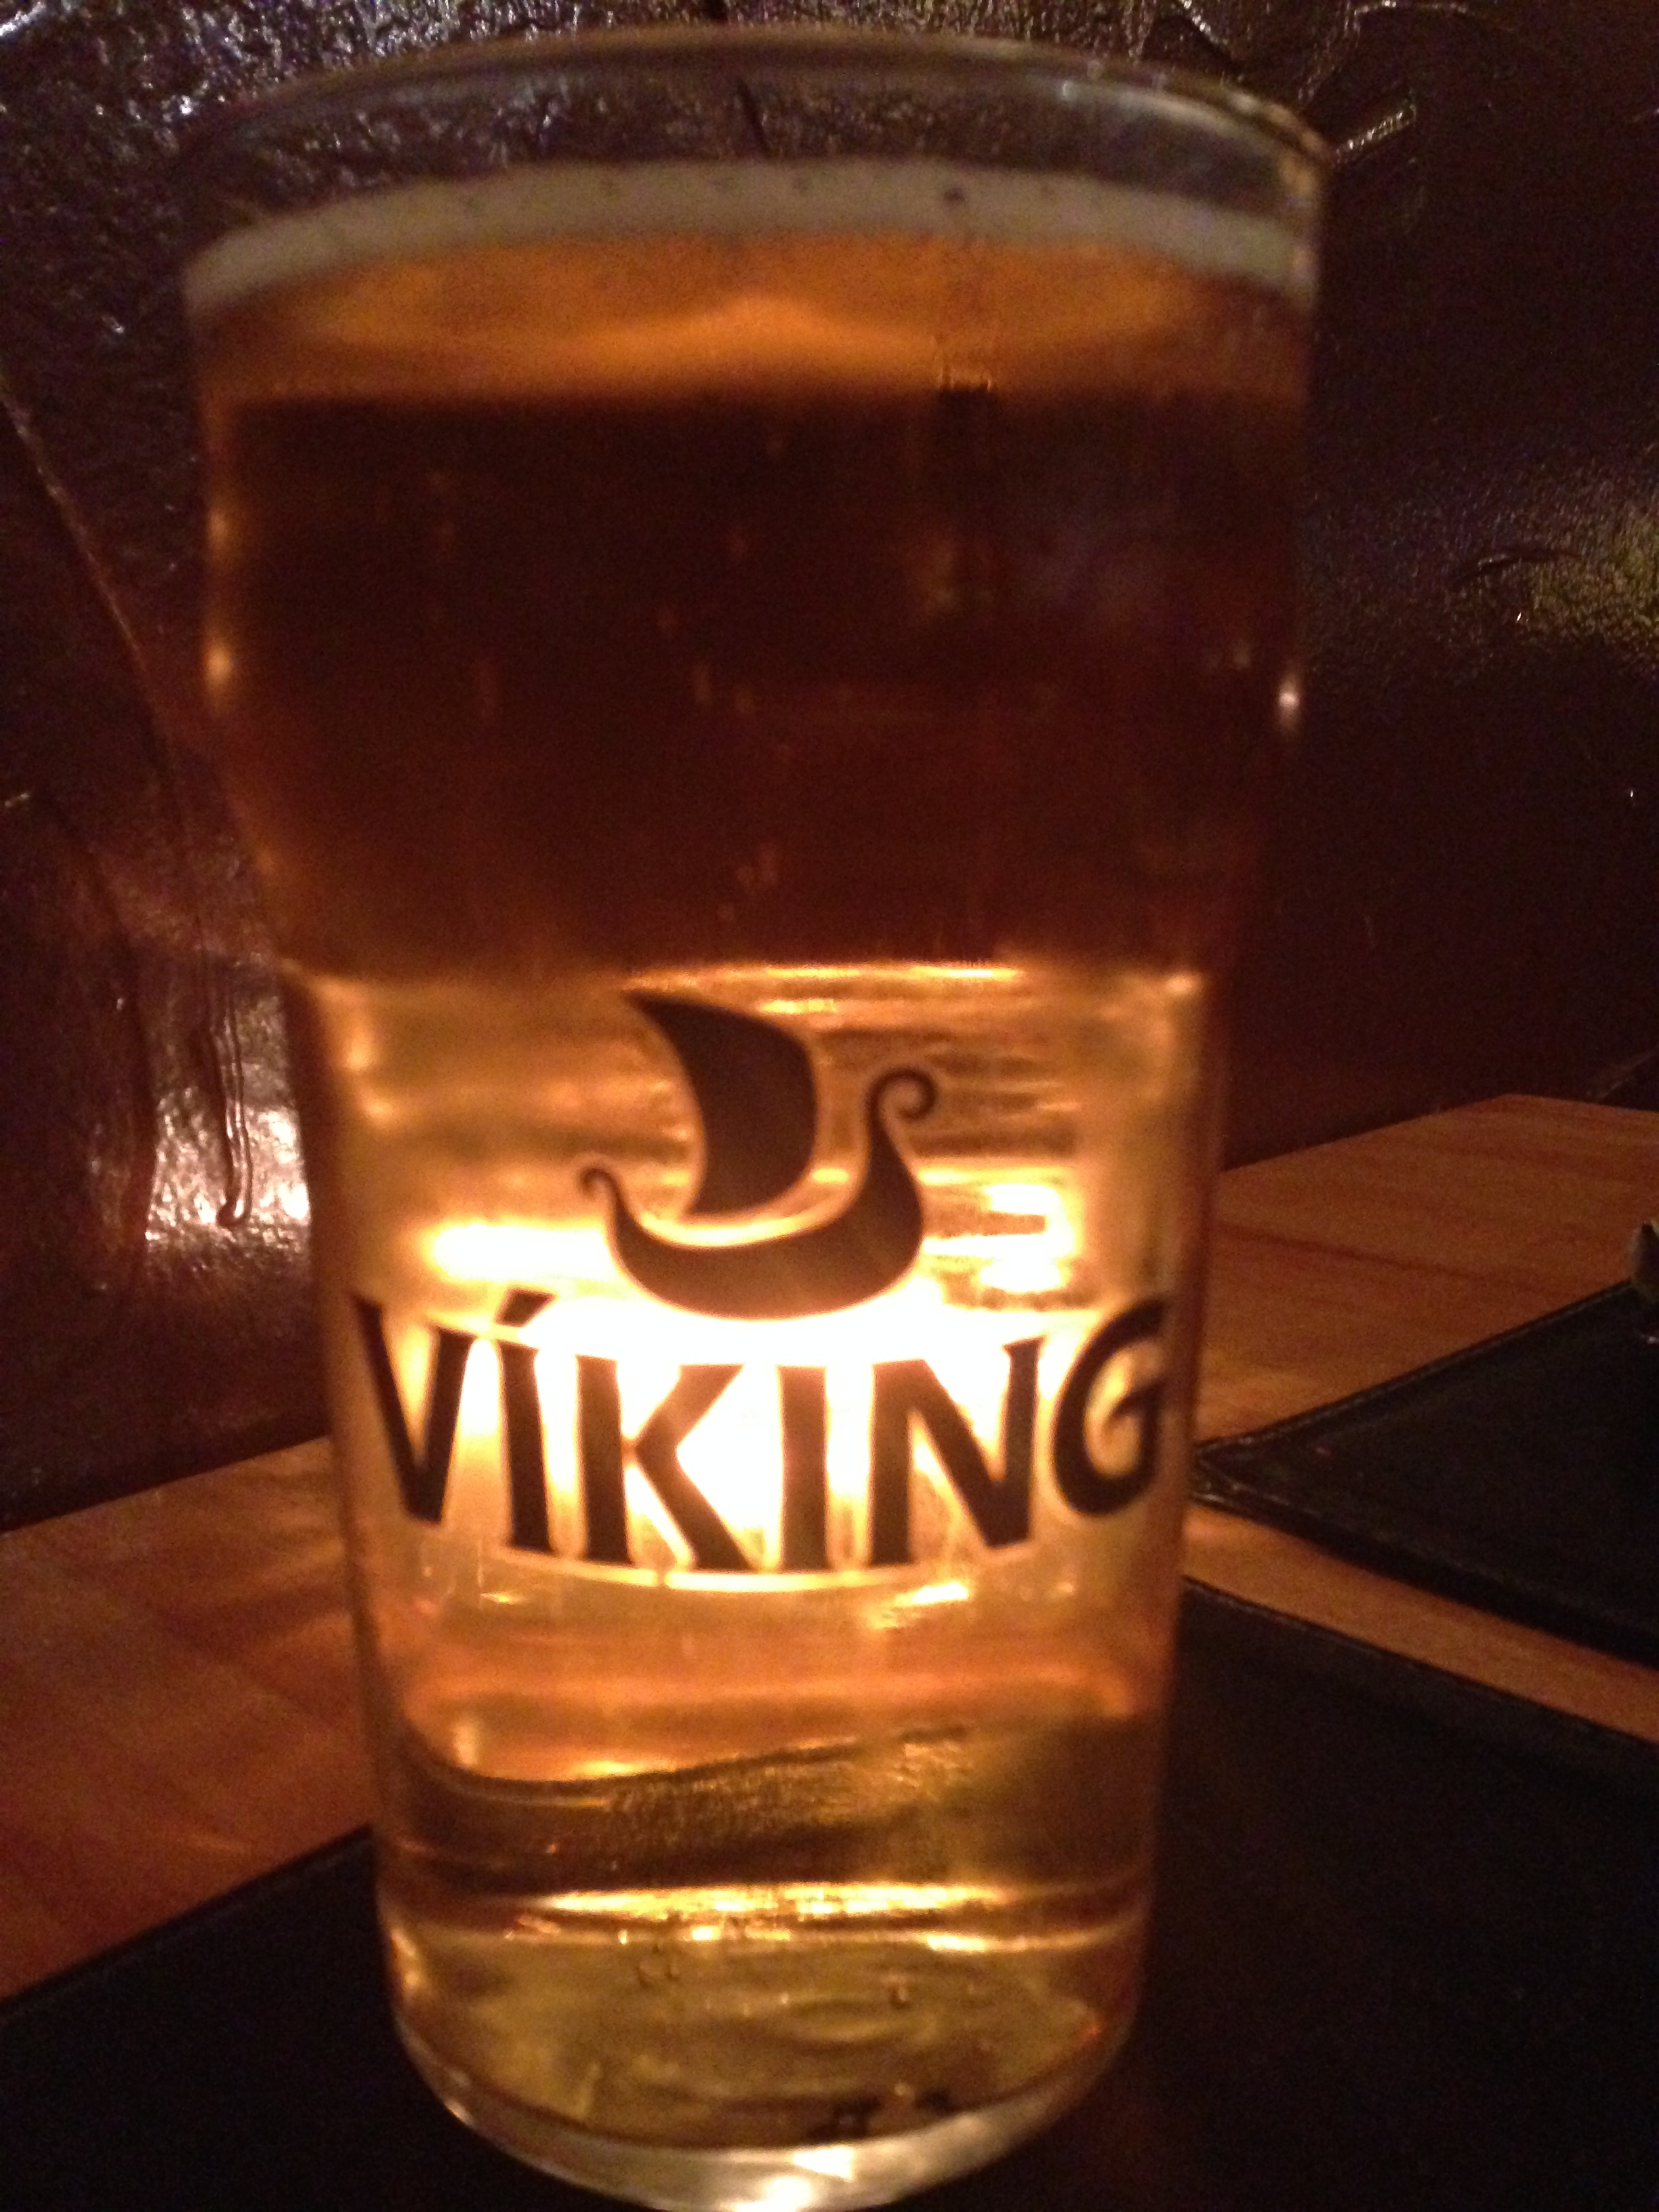 Icelandic Viking Beer - very tasty!